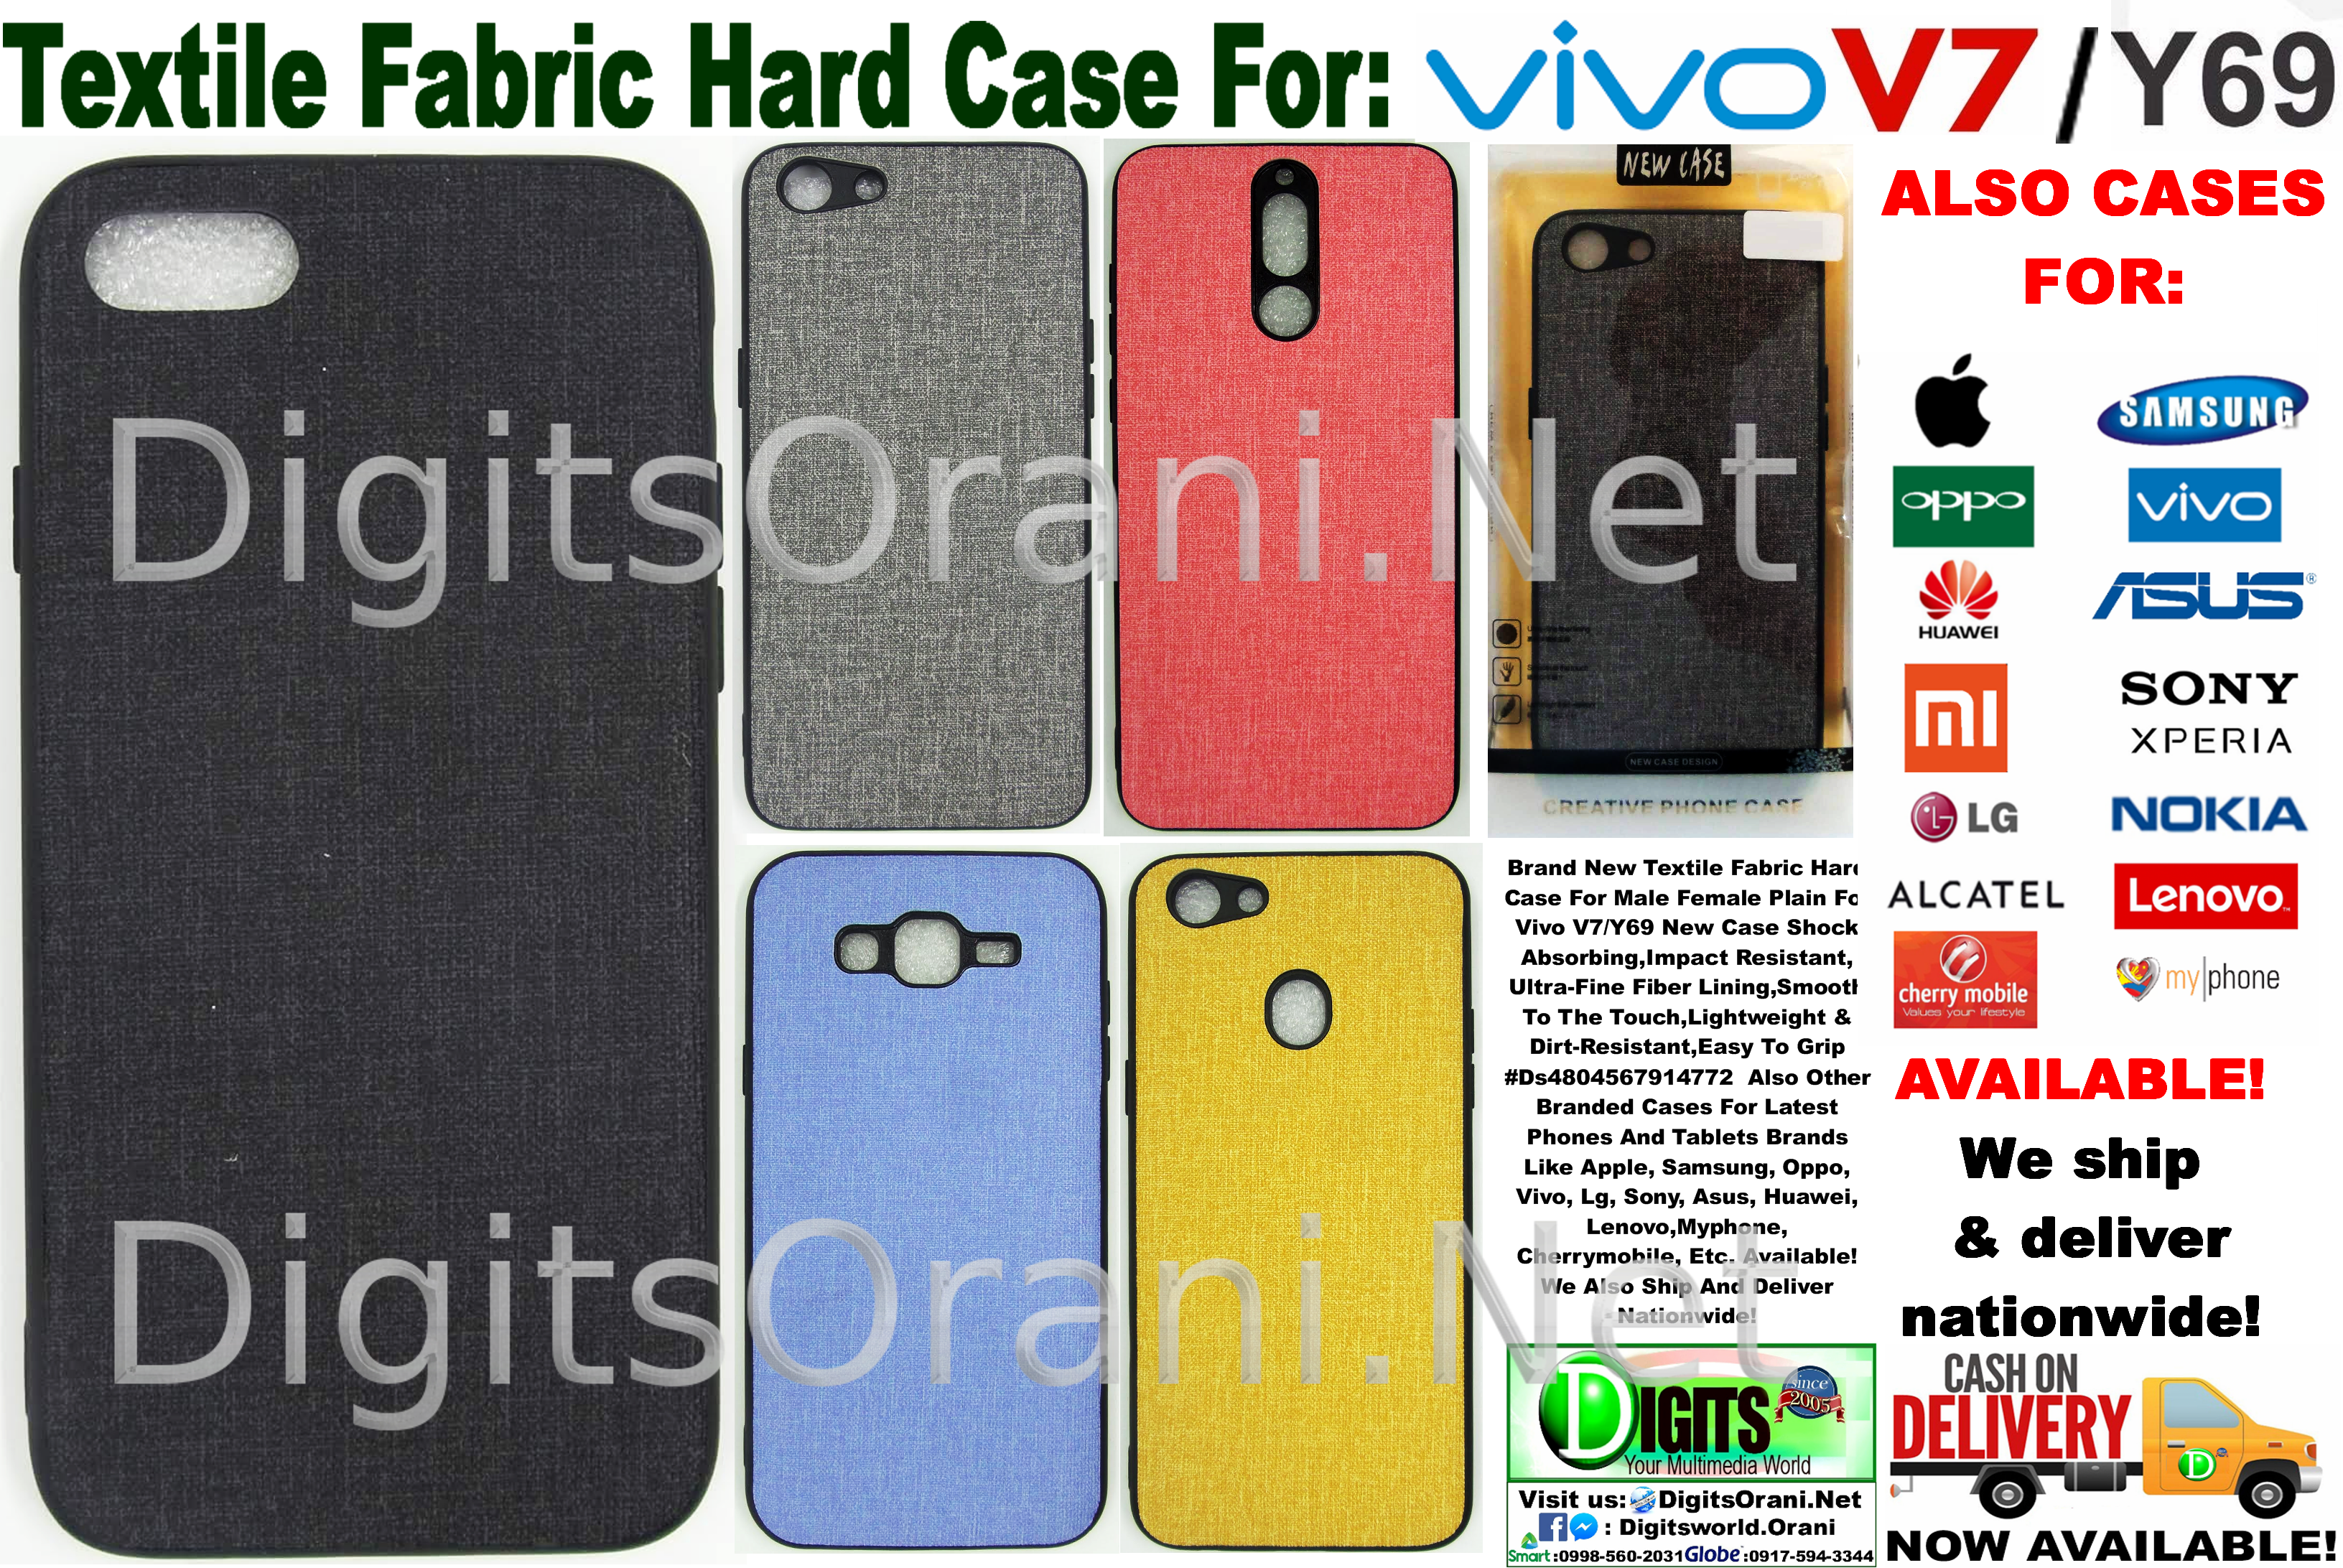 new arrival e80a4 03aea Textile Fabric Hard Case For Male Female Plain For Vivo V7/Y69 New Case  Shock Absorbing,Impact Resistant,Ultra-Fine Fiber Lining,Smooth To The ...